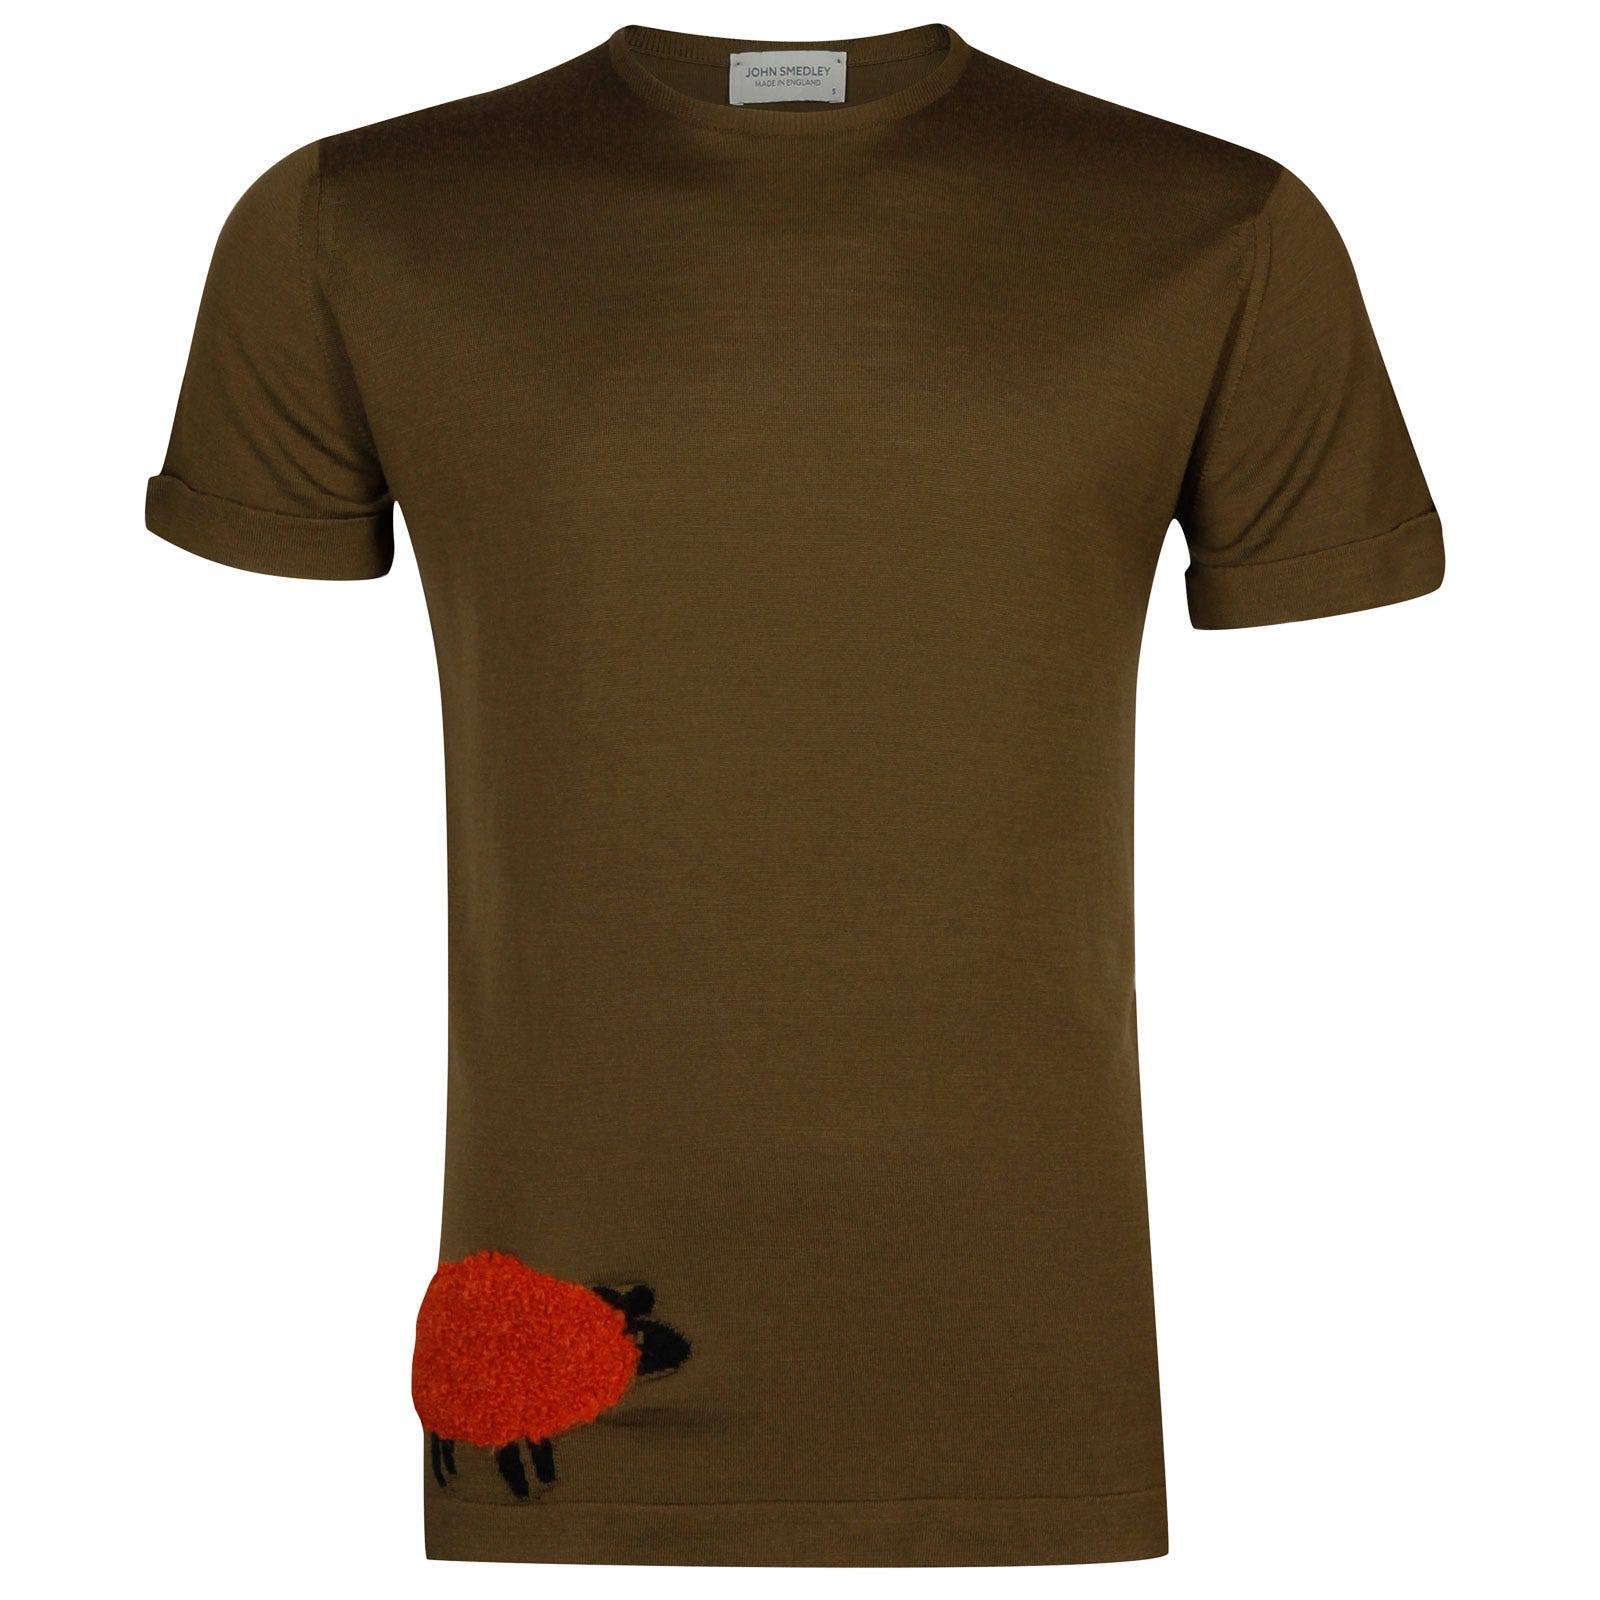 John Smedley bleat Merino Wool T-shirt in Kielder Green/Flare Orange-S